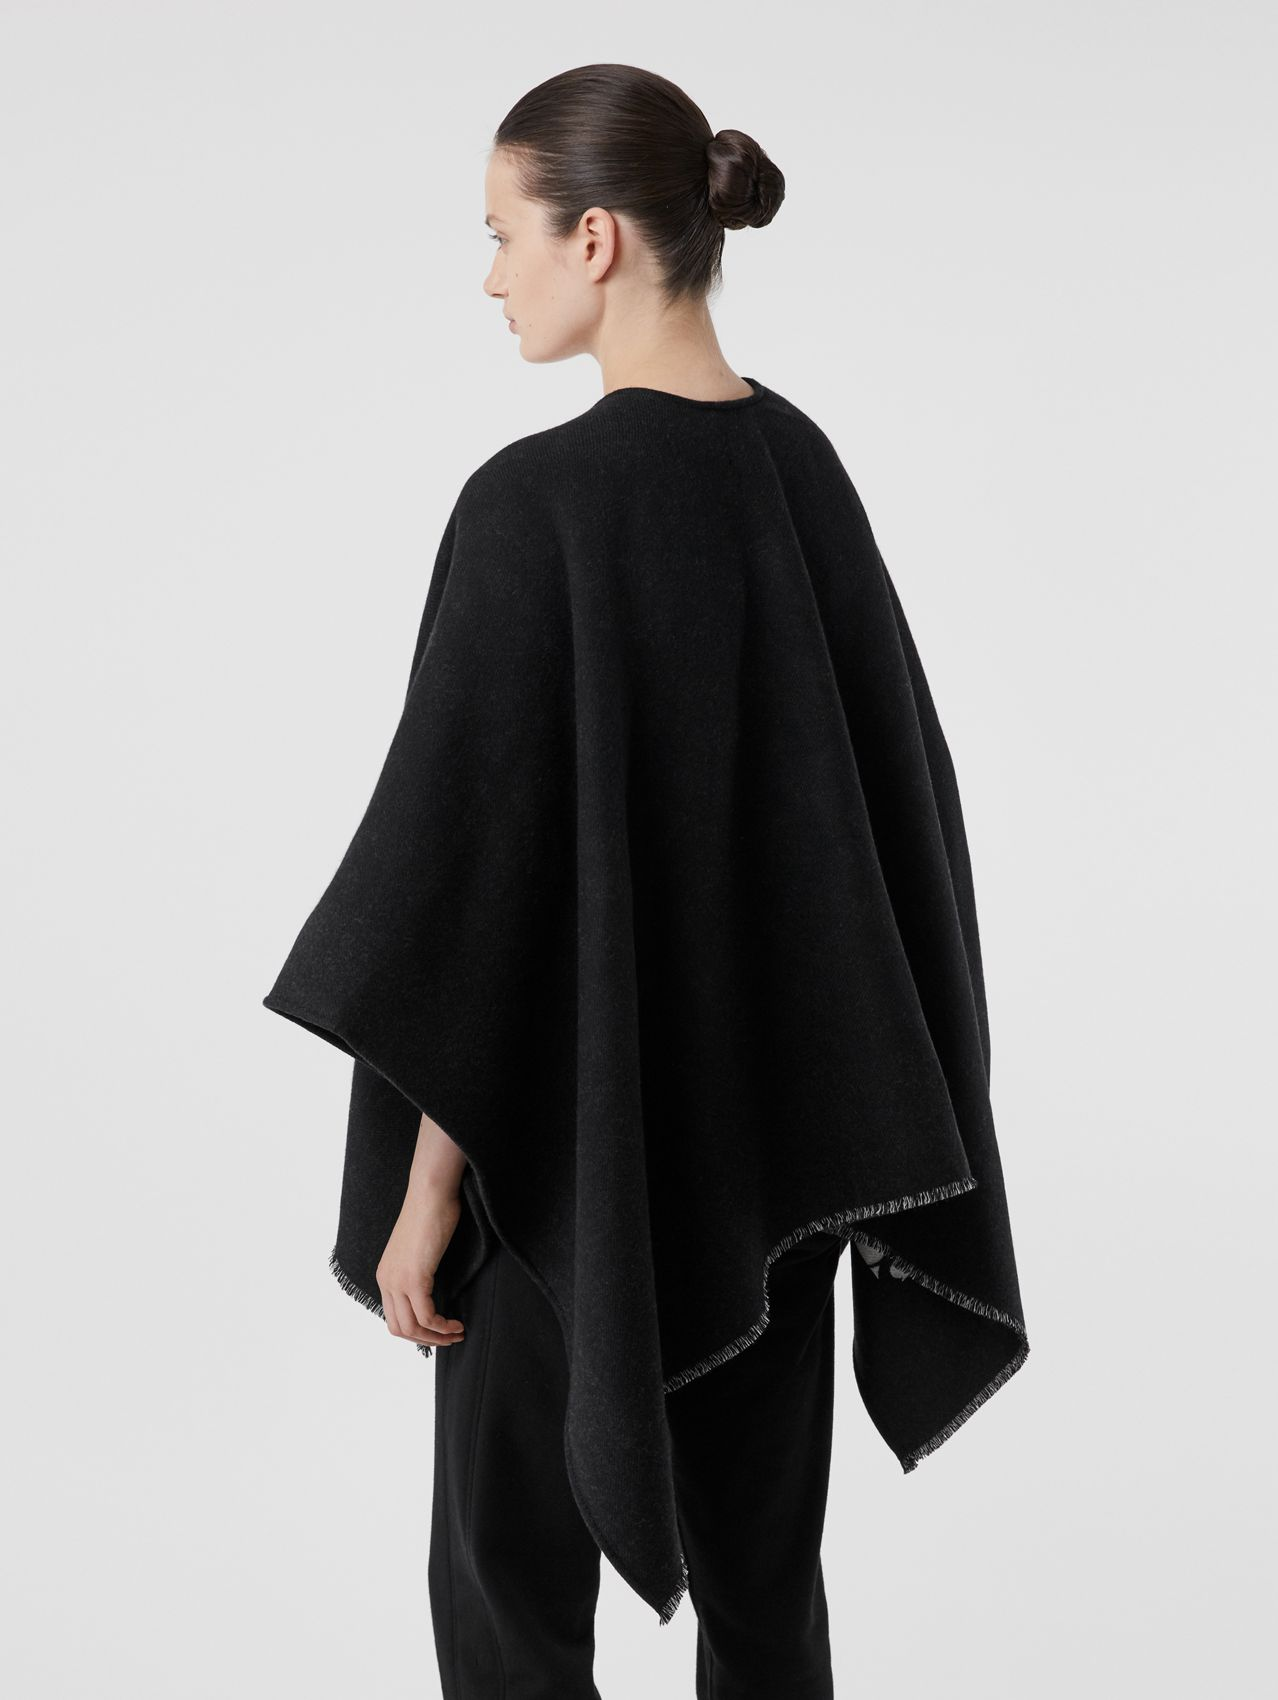 Monogram Wool Jacquard Cape in Black